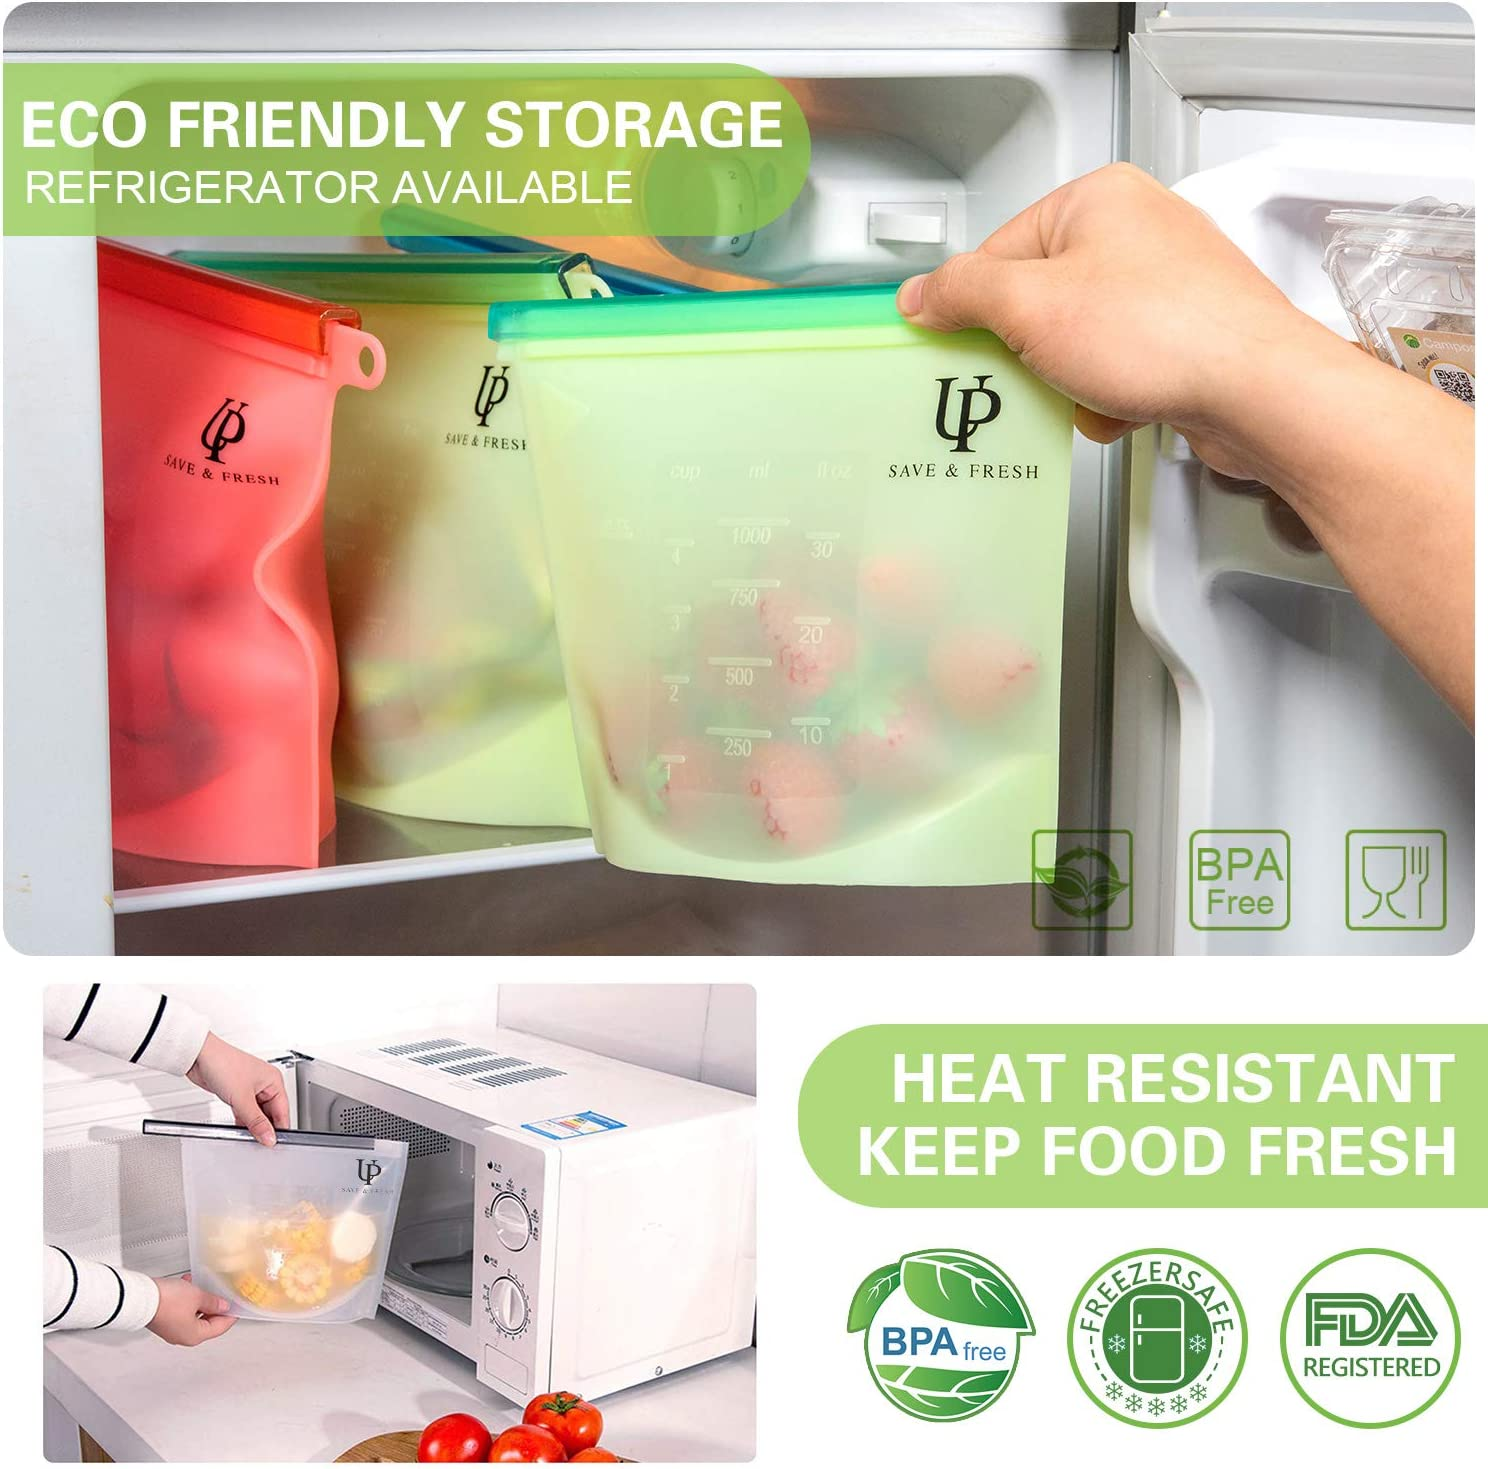 Silicone Food Storage Bags and Reusable Mesh Bags, Set of 6 Food Containers and 12 Produce Bags, Leakproof Food Preservation Bags with Airtight Seal For Meat, Vegetables, Snacks, Left Overs, Lunch